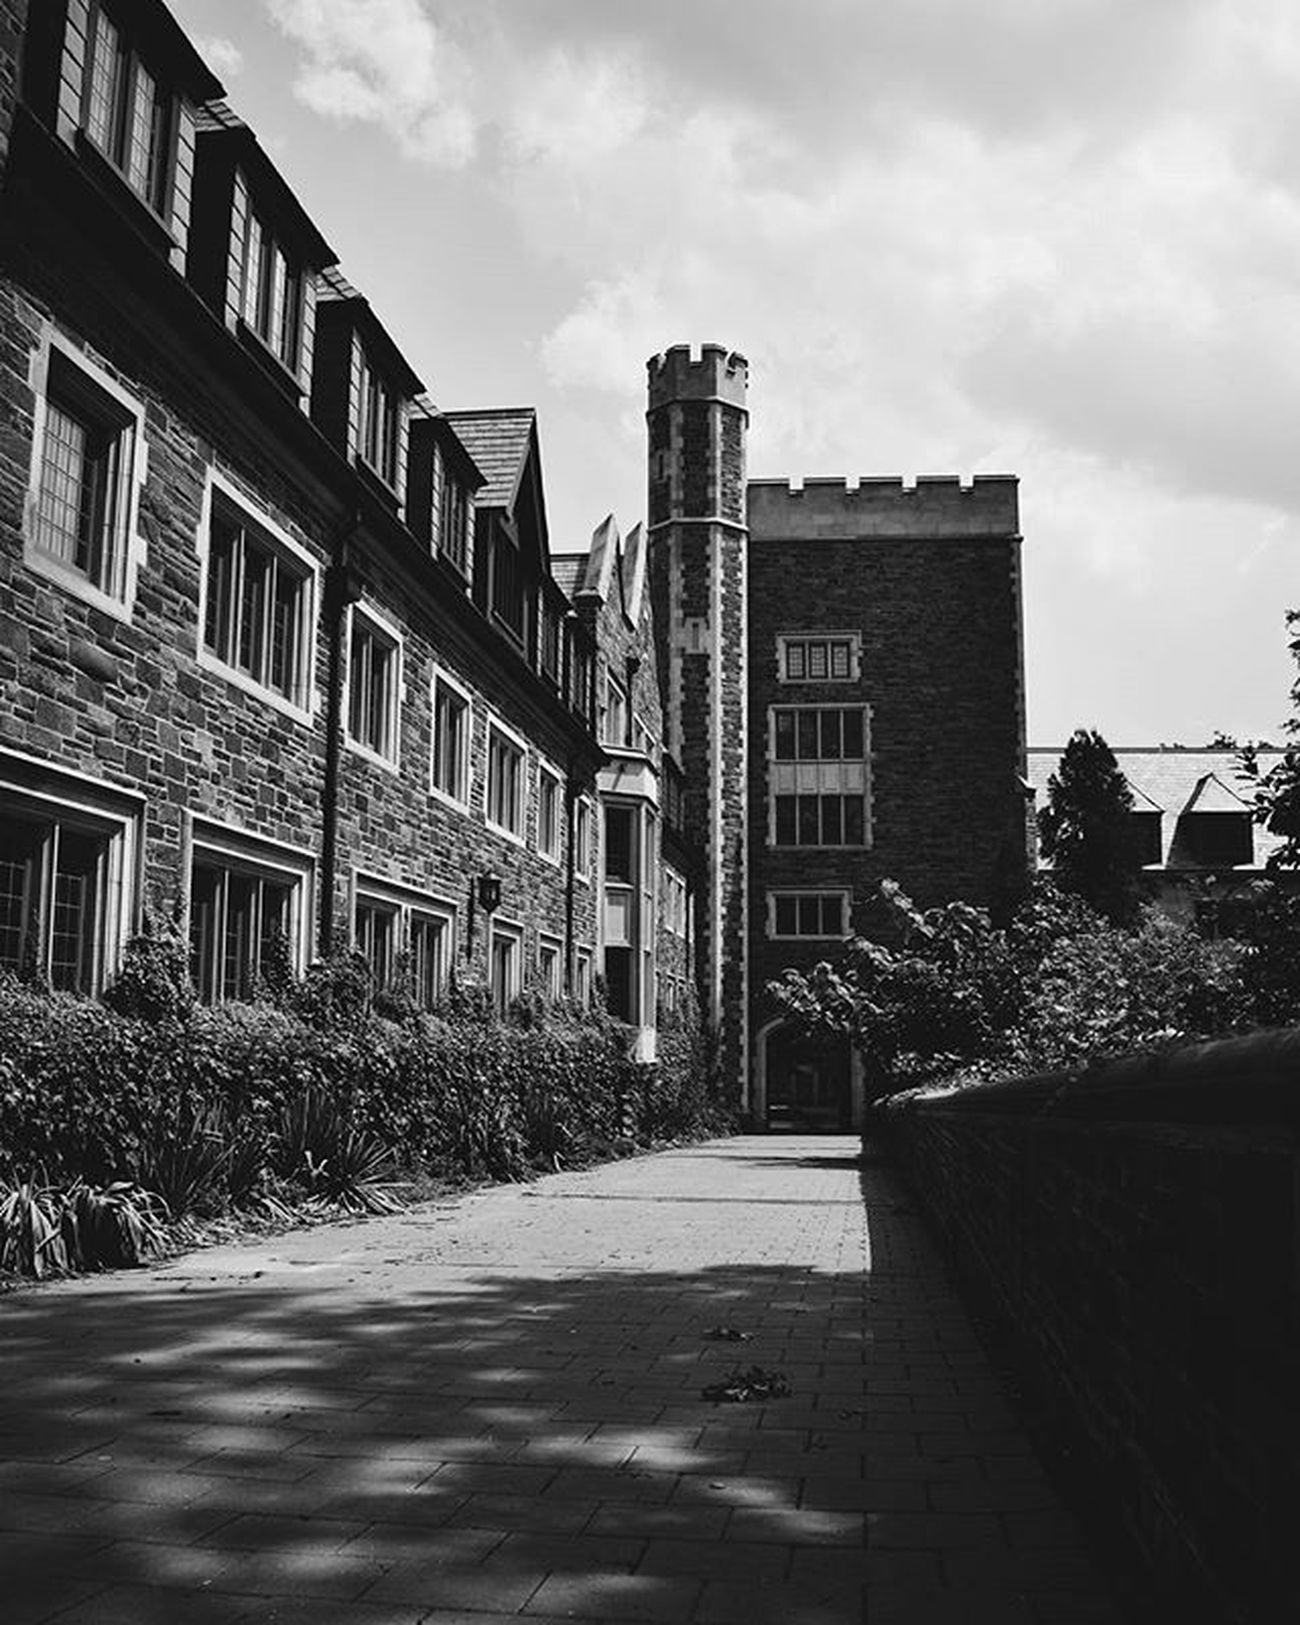 Princeton IvyLeague College Architecture Rock Stone Castle Perspective Vanishingpoint Bnw Bnw_life Bnw_planet Bnw_photo Bnw_society Bnw_captures Nikon D3300 VSCO Vscophile Vscocam